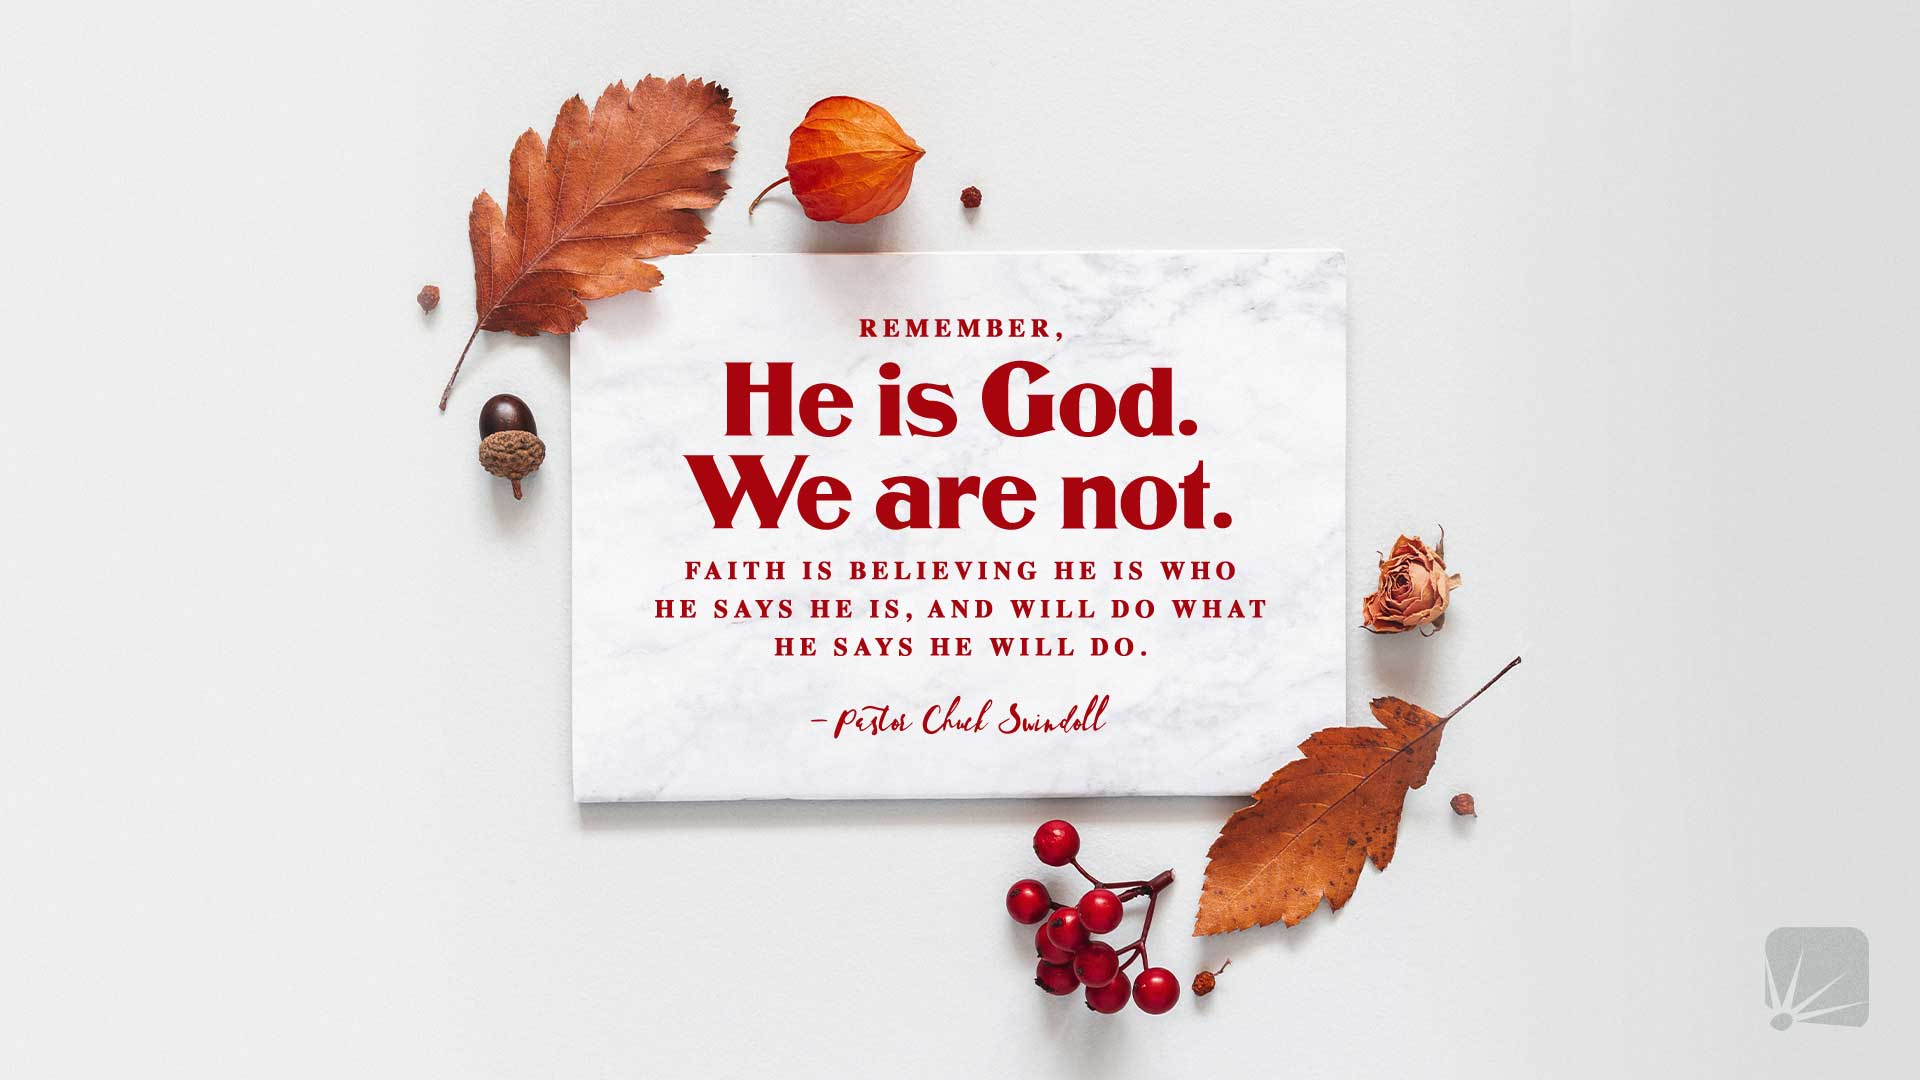 Remember, He is God. We are not. Faith is believing He is who He says He is and will do what He says He will do. —Pastor Chuck Swindoll